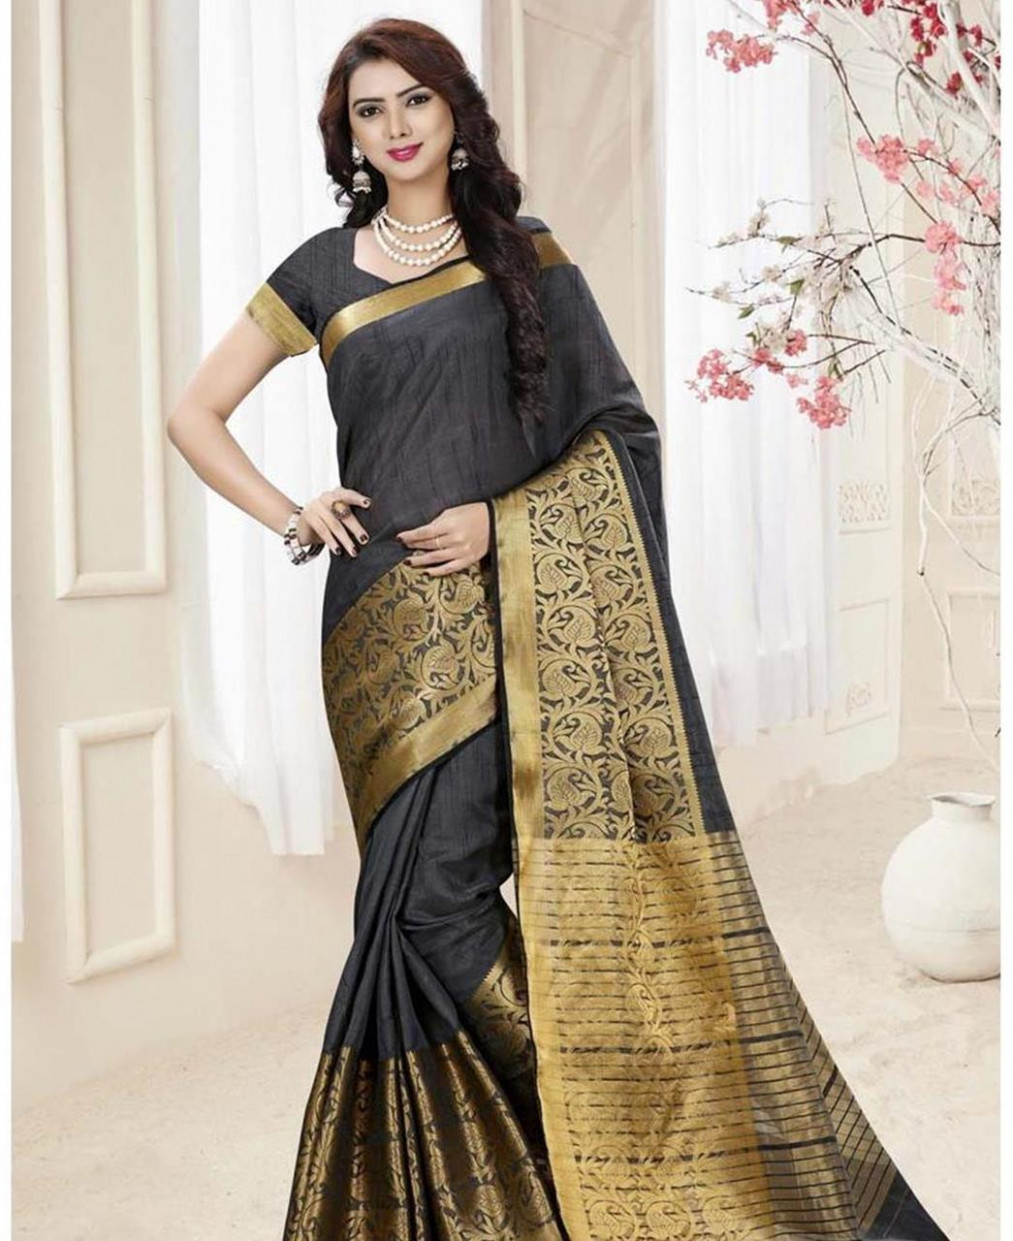 Buy Well Formed Black Silk Saree [107285] at ₹ 1,338.87